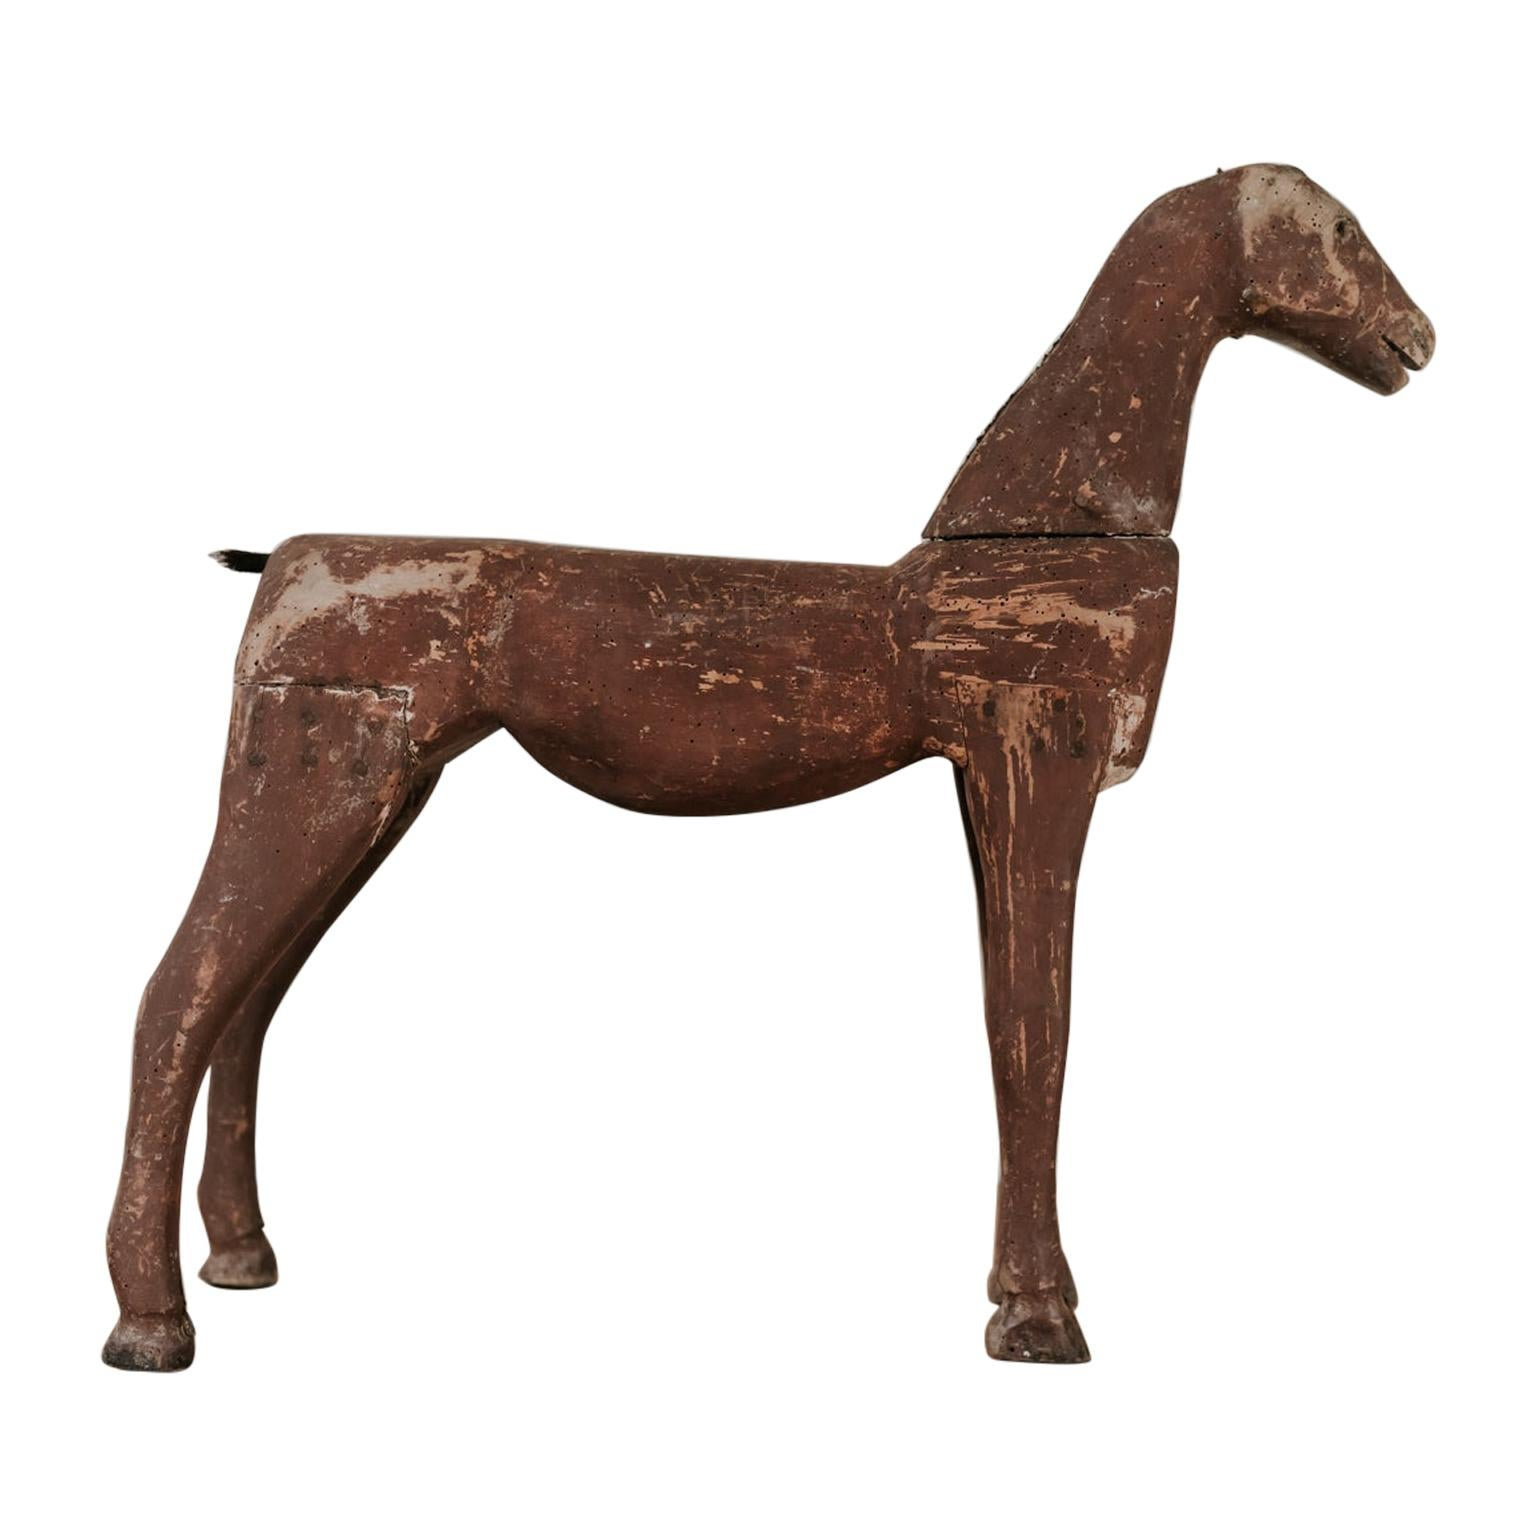 19th Century Wooden Toy Horse